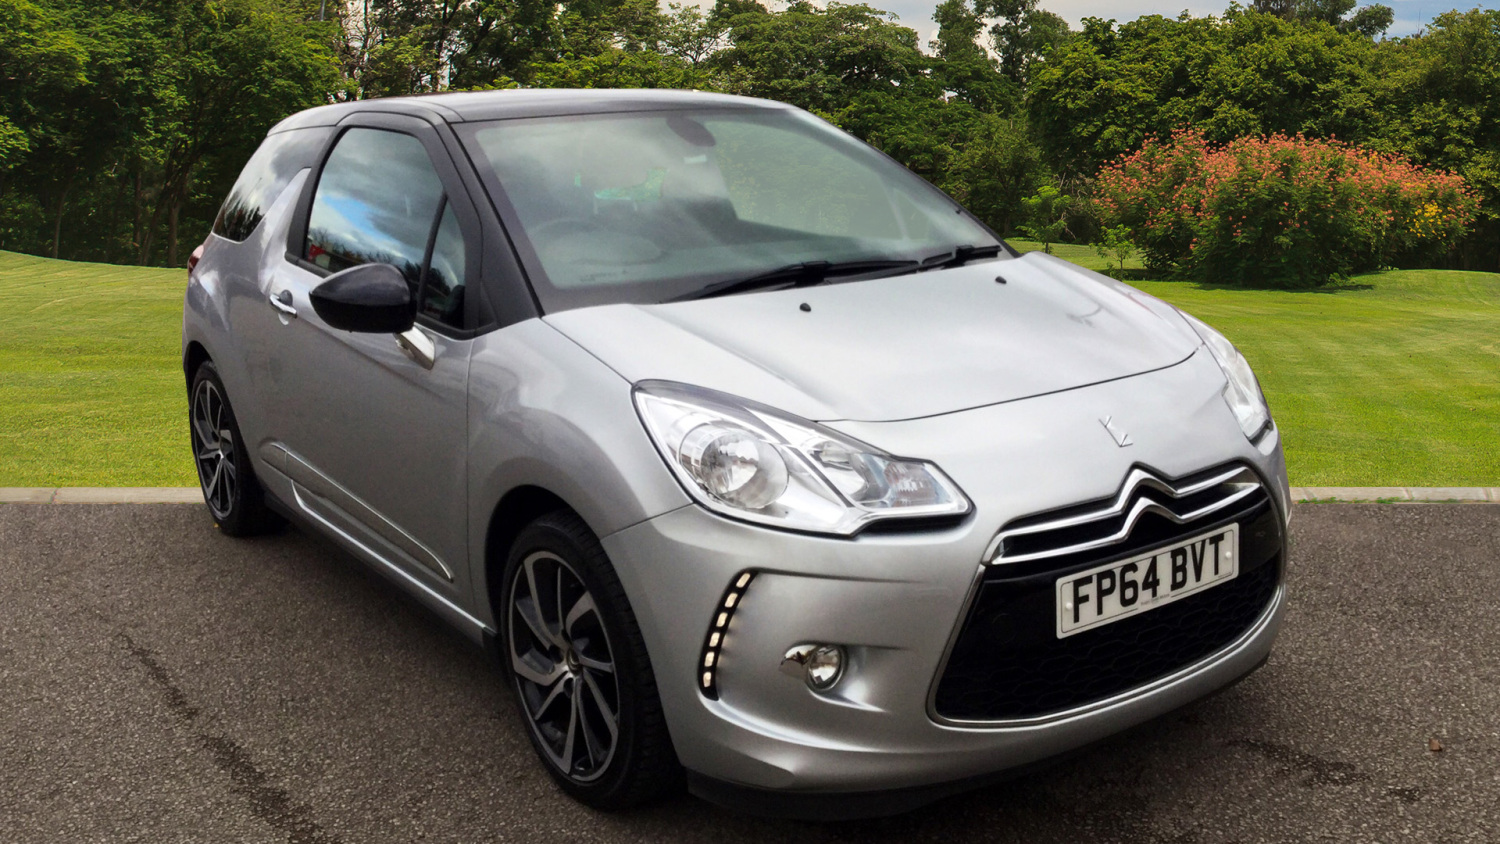 used citroen ds3 1 6 e hdi airdream dstyle plus 3dr diesel hatchback for sale in scotland. Black Bedroom Furniture Sets. Home Design Ideas